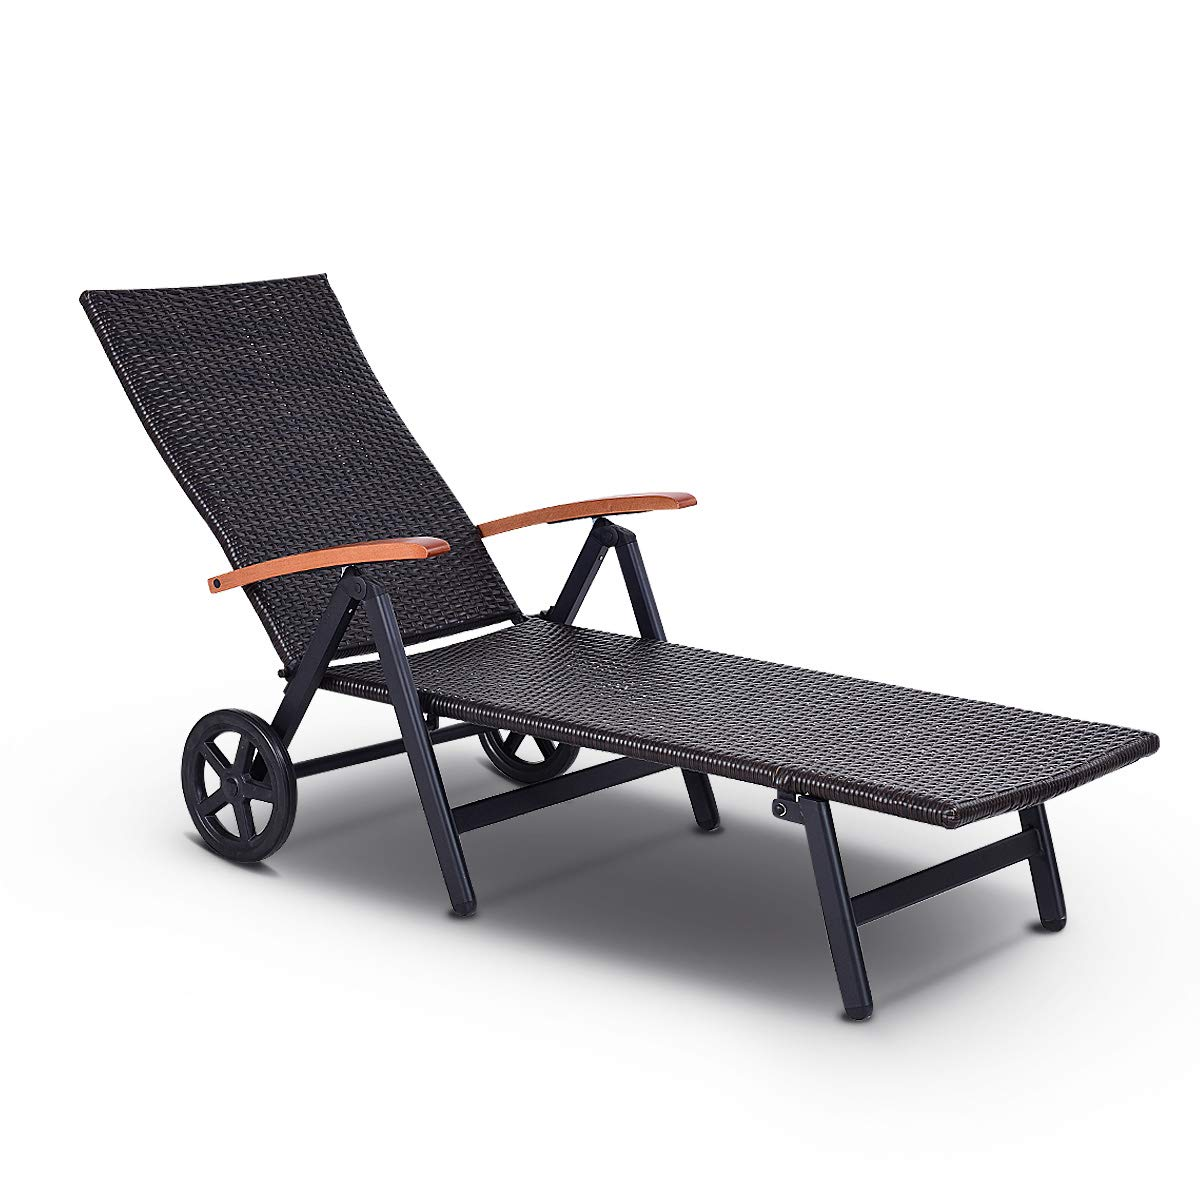 Tangkula Wicker Chaise Folding Back Adjustable Aluminum Rattan Lounger Recliner Chair W/Wheels (Mix Brown)